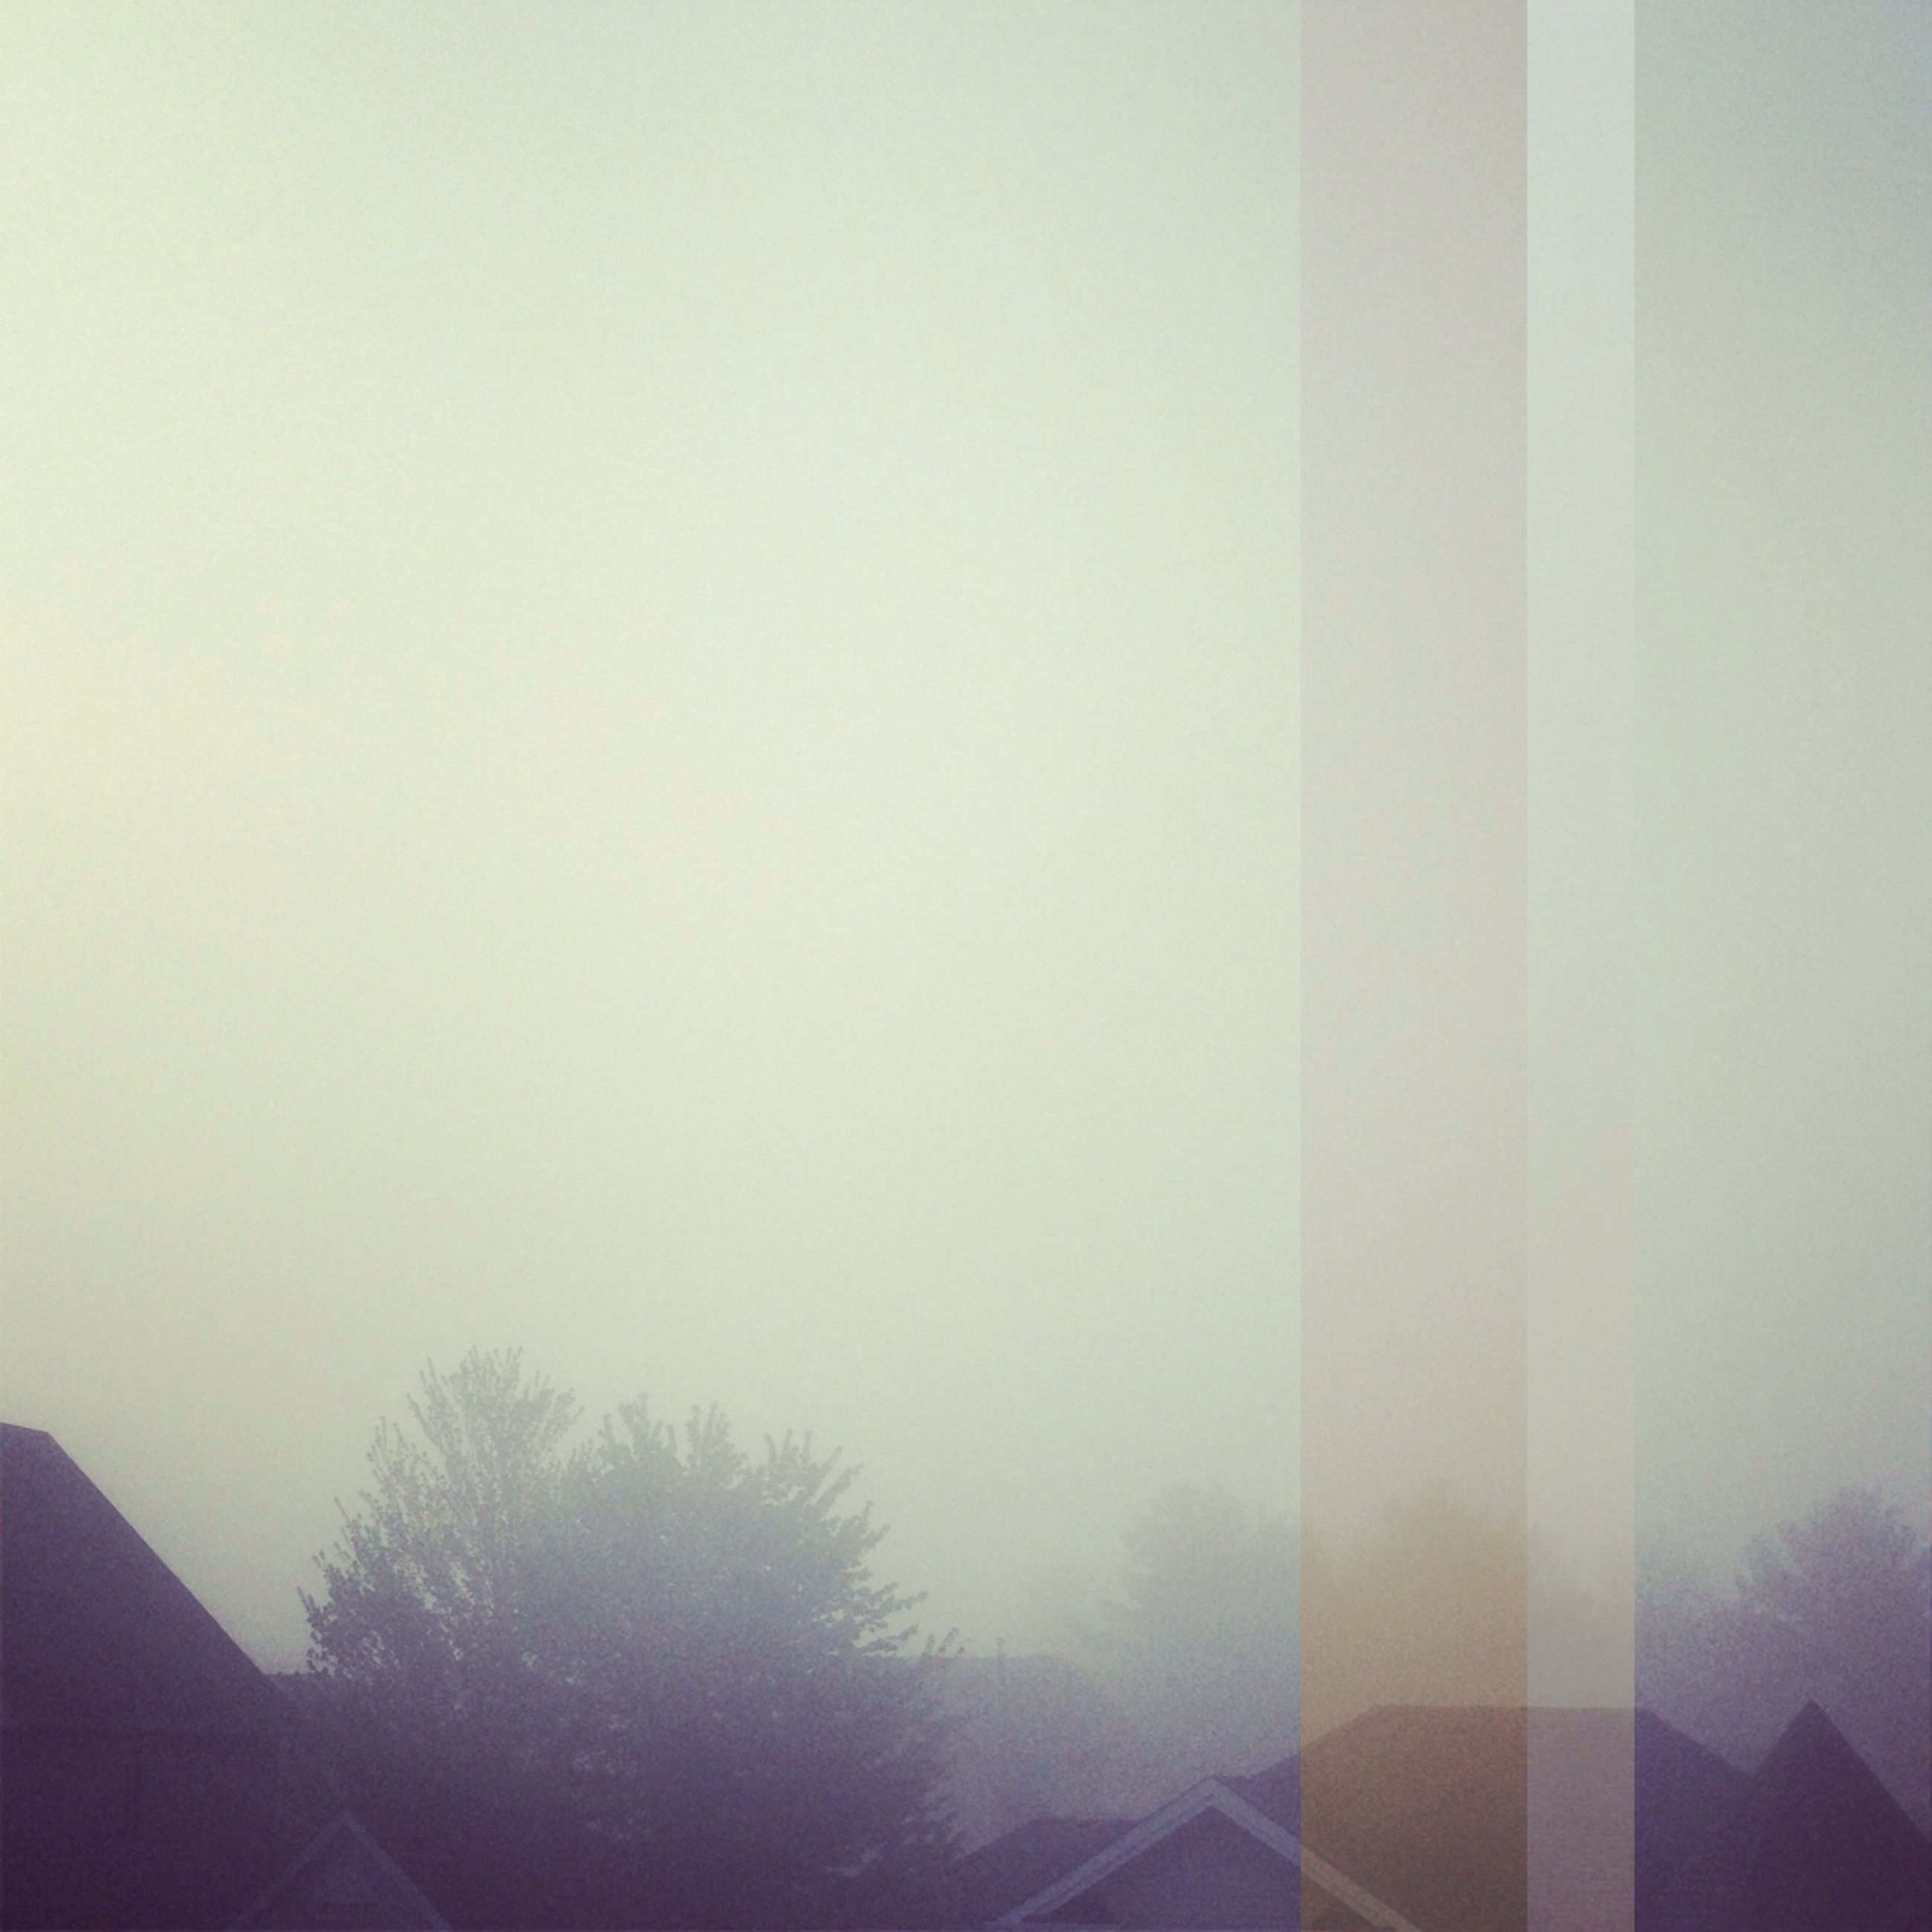 fog, foggy, copy space, built structure, architecture, weather, tree, building exterior, tranquility, nature, day, no people, beauty in nature, tranquil scene, sky, mist, outdoors, scenics, dawn